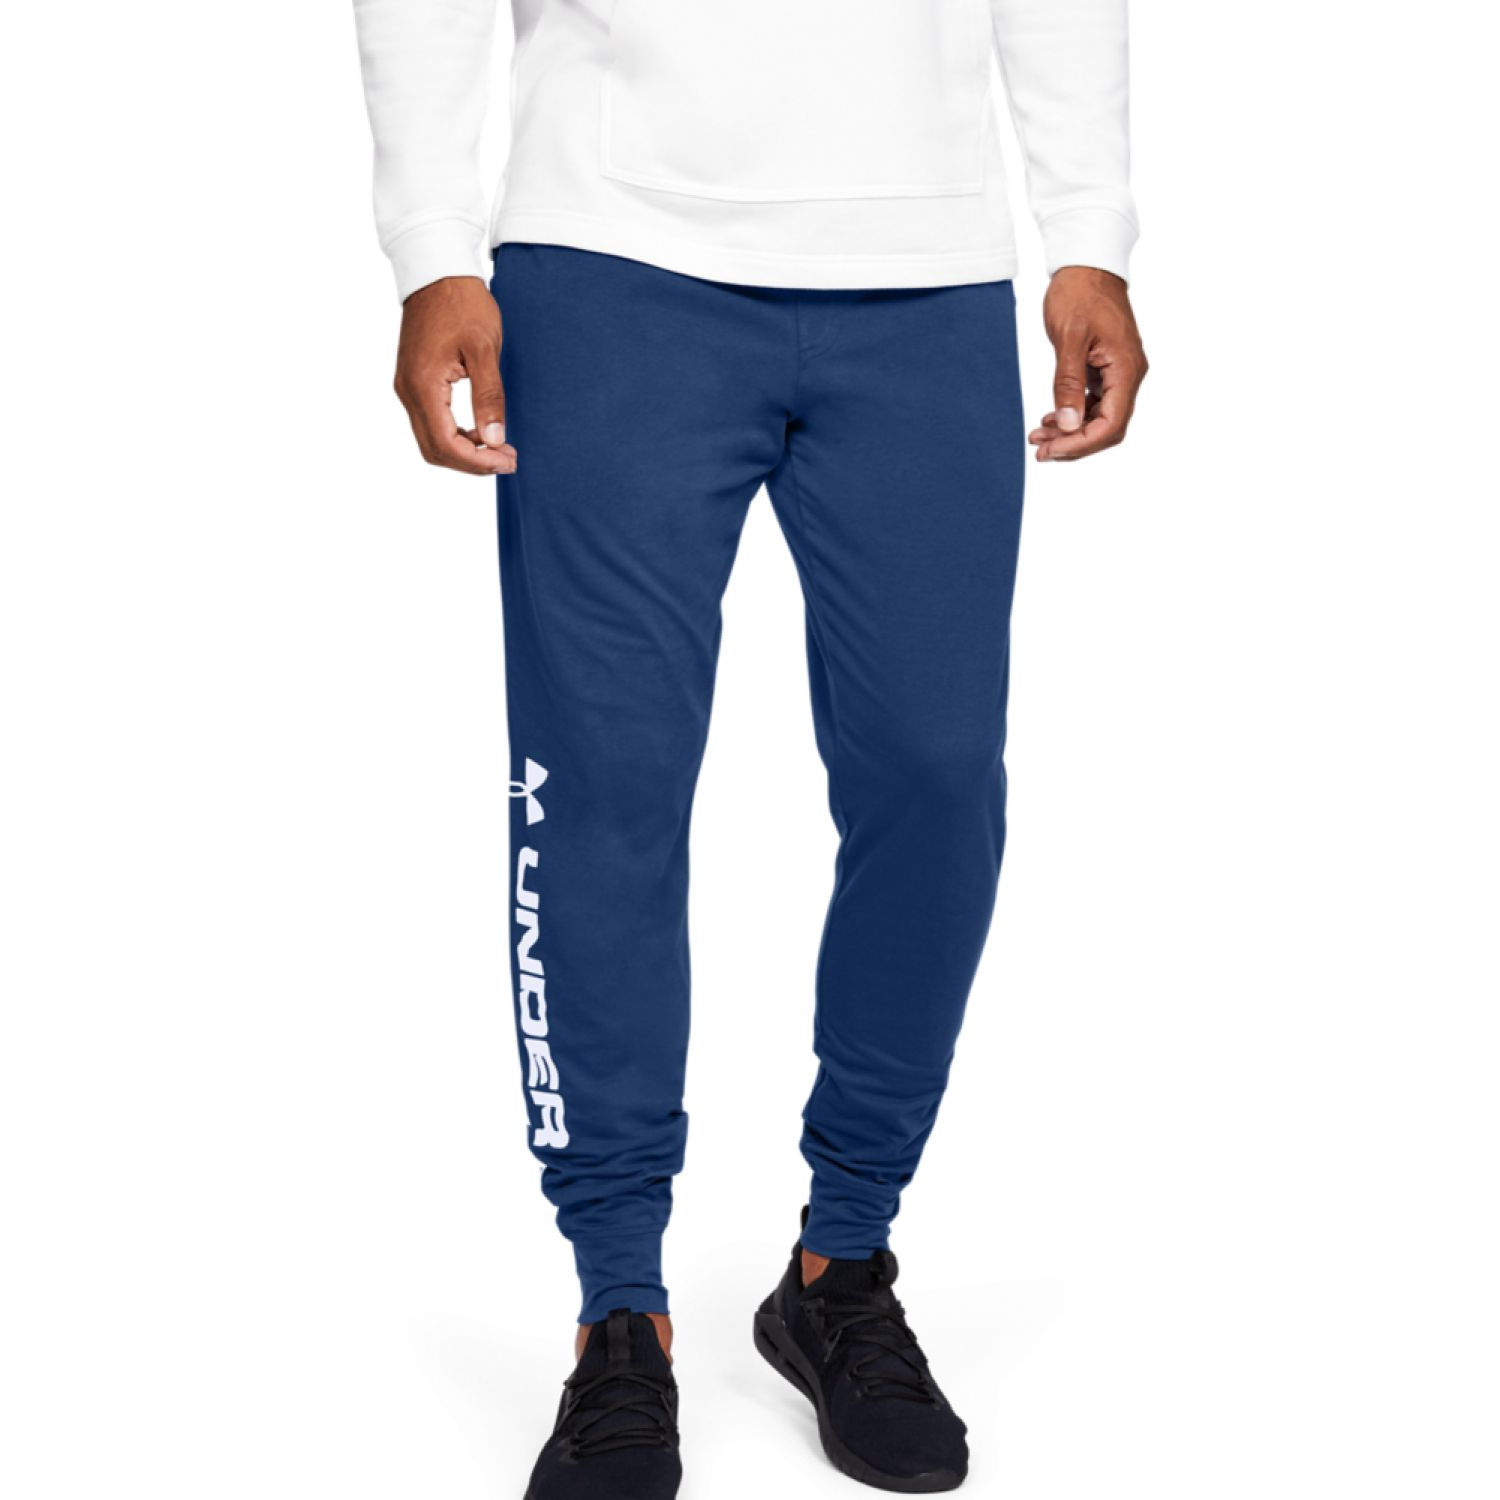 Under Armour Sportstyle Cotton Graphic Jogger Azul Pantalones deportivos